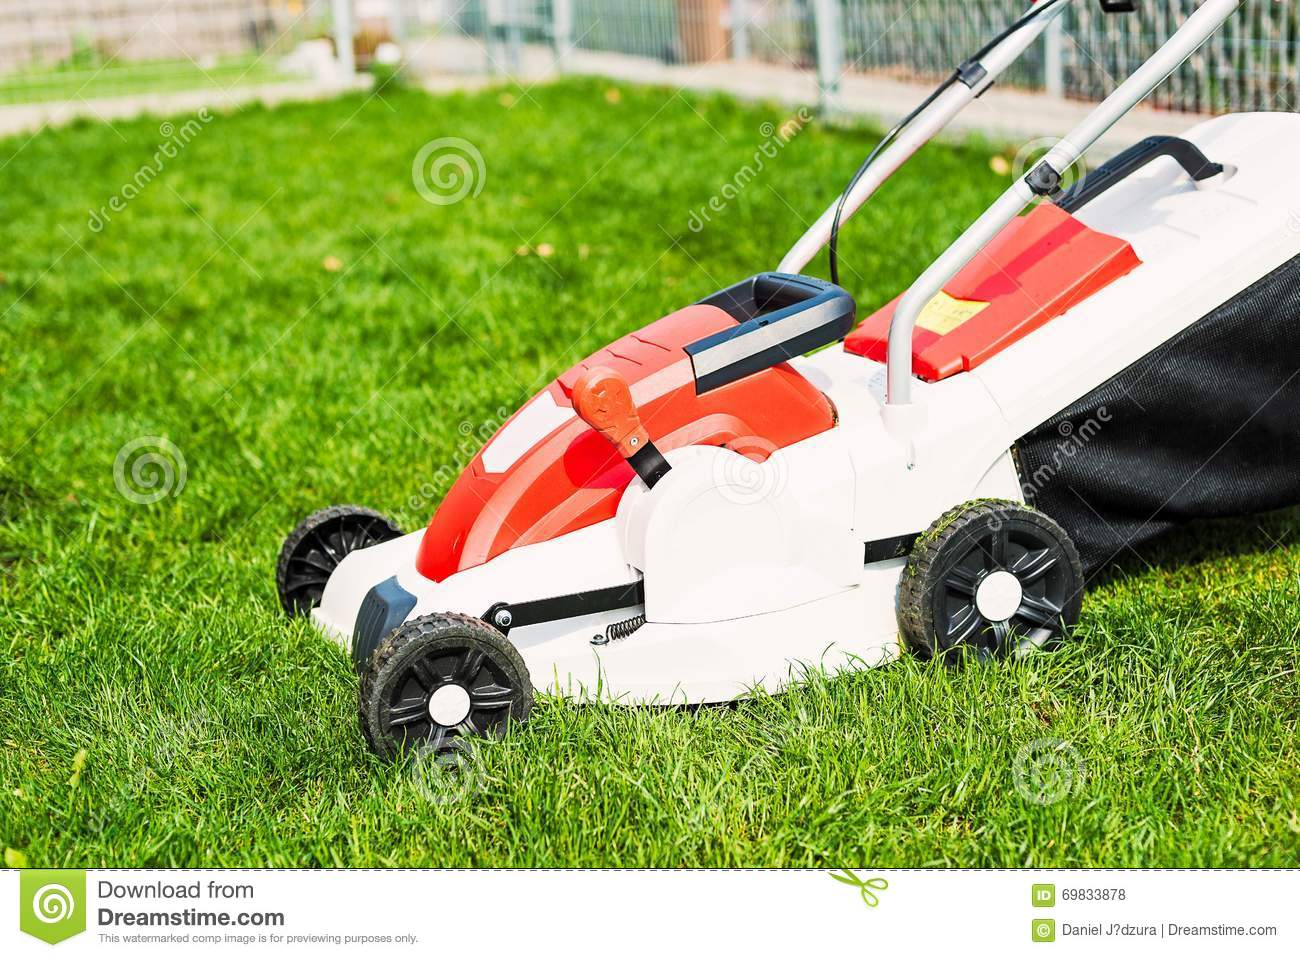 Lawn mower cutting green grass stock image for Lawn mower cutting grass